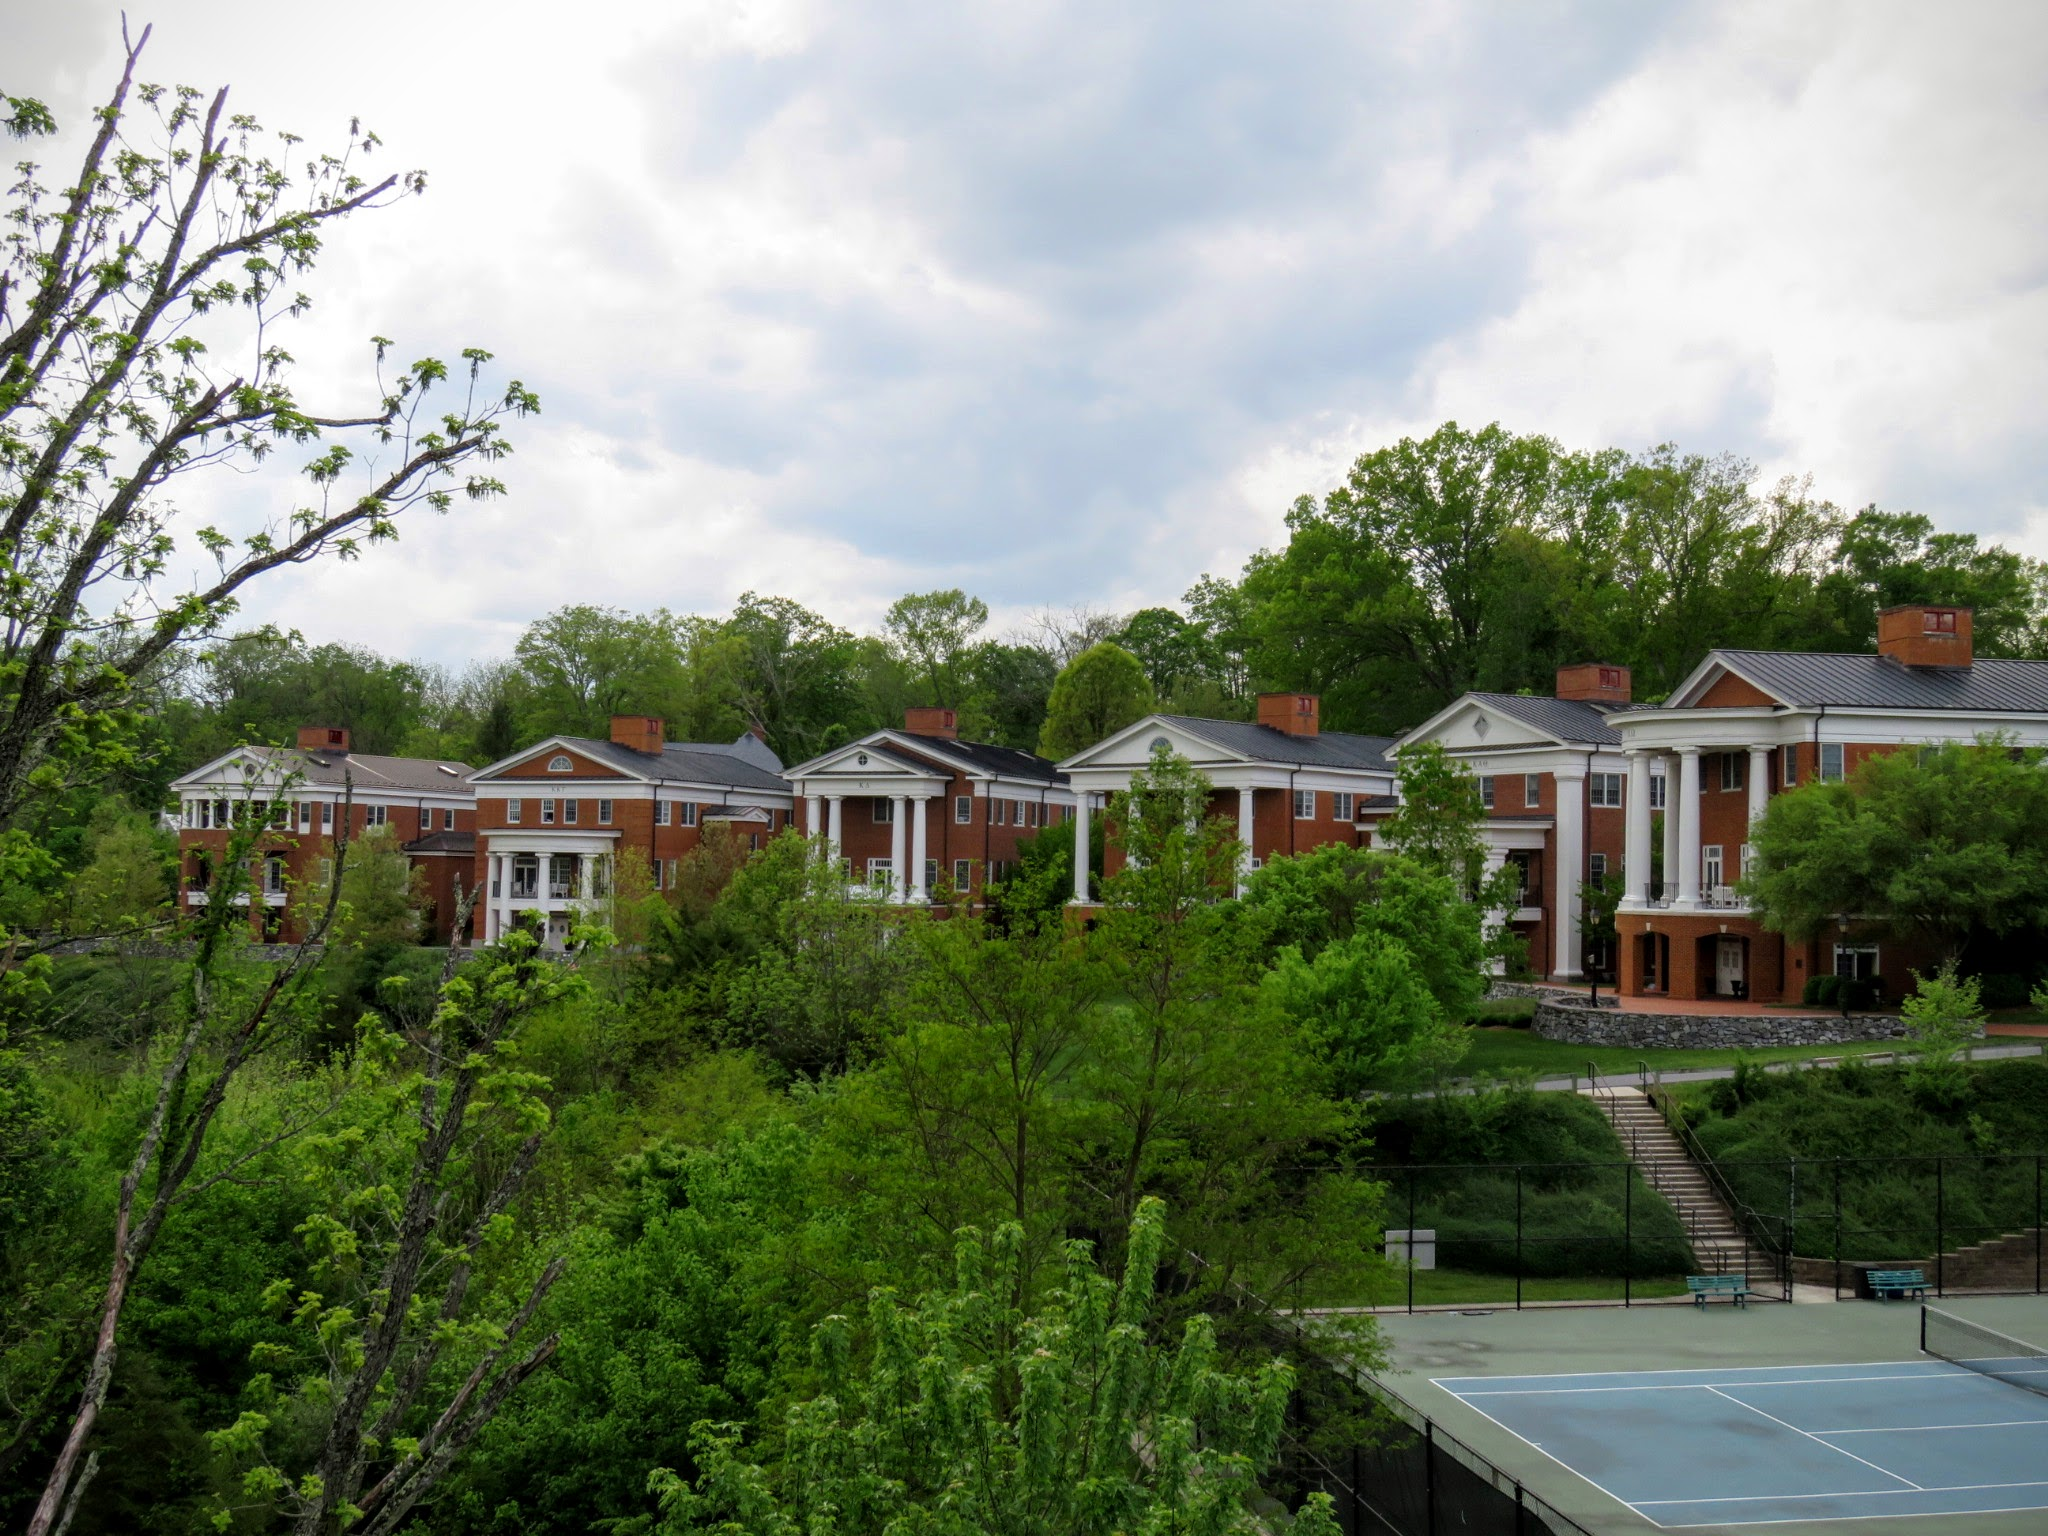 Sorority Row, where Formal Rush takes place for women every year